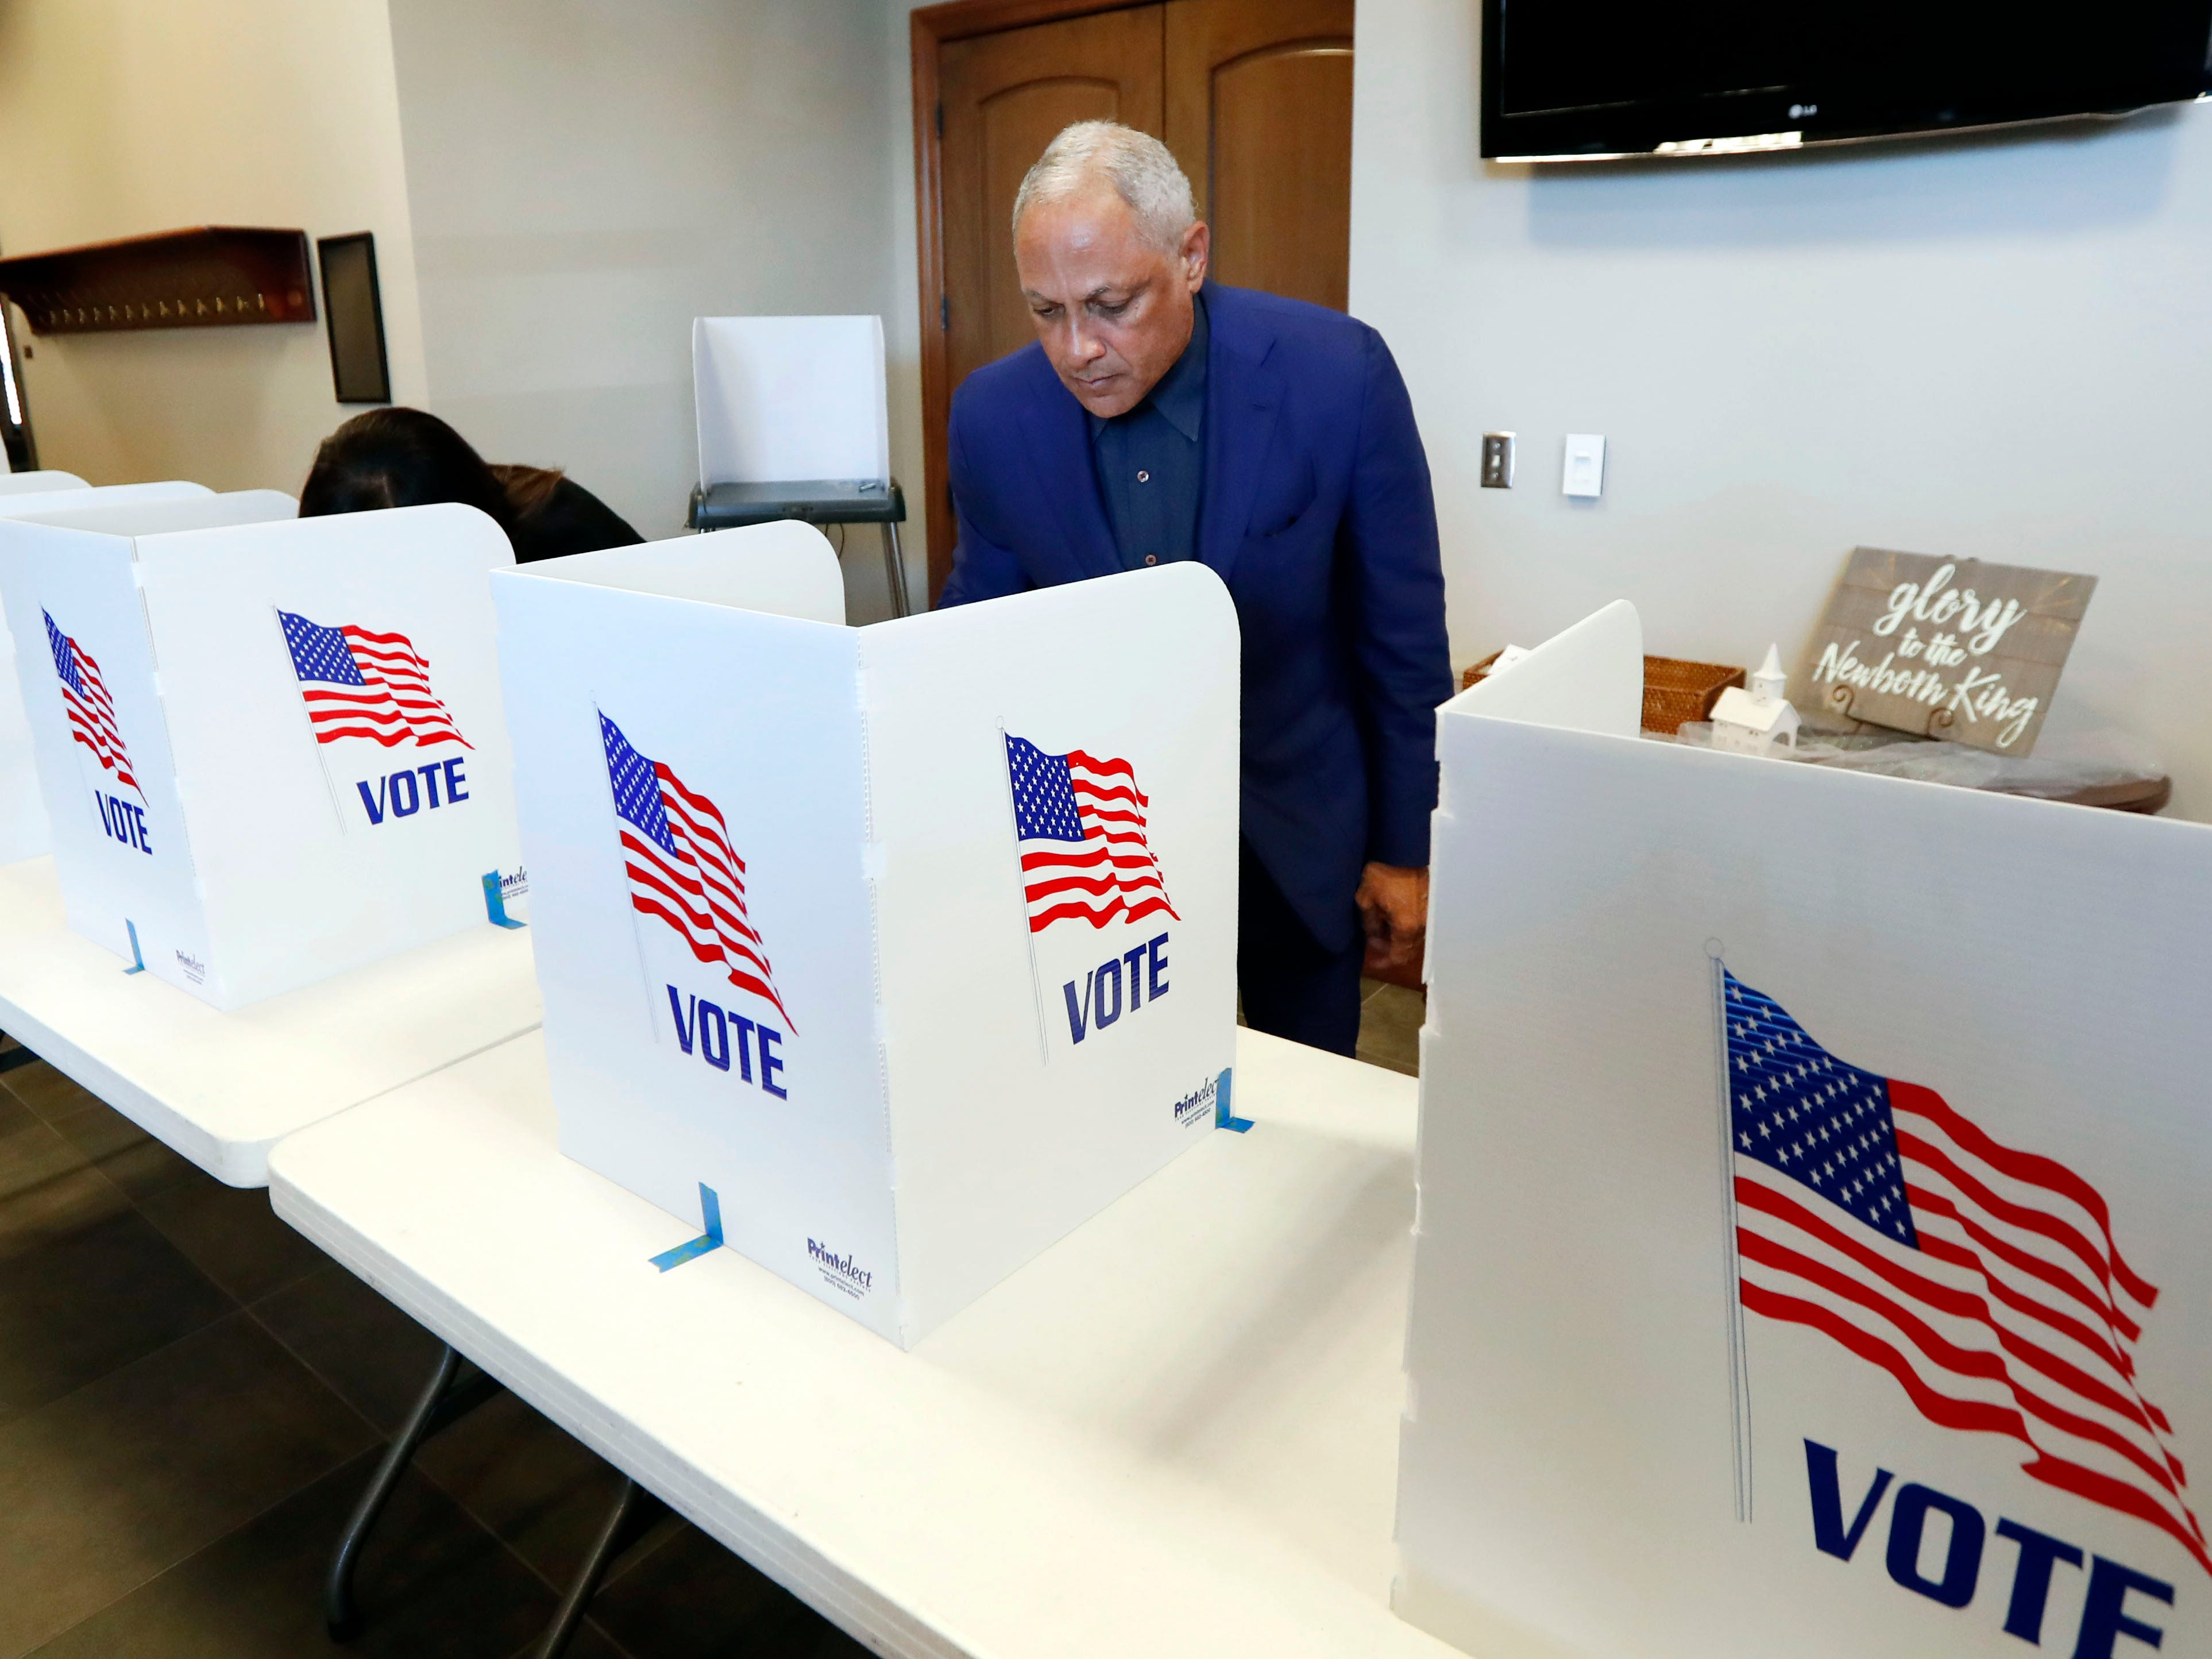 Democrat Mike Espy votes in a runoff election Tuesday, Nov. 27, 2018 in Ridgeland, Miss.  Mississippi voters are deciding the last U.S. Senate race of the midterms, choosing between Espy and Republican Sen. Cindy Hyde-Smith.